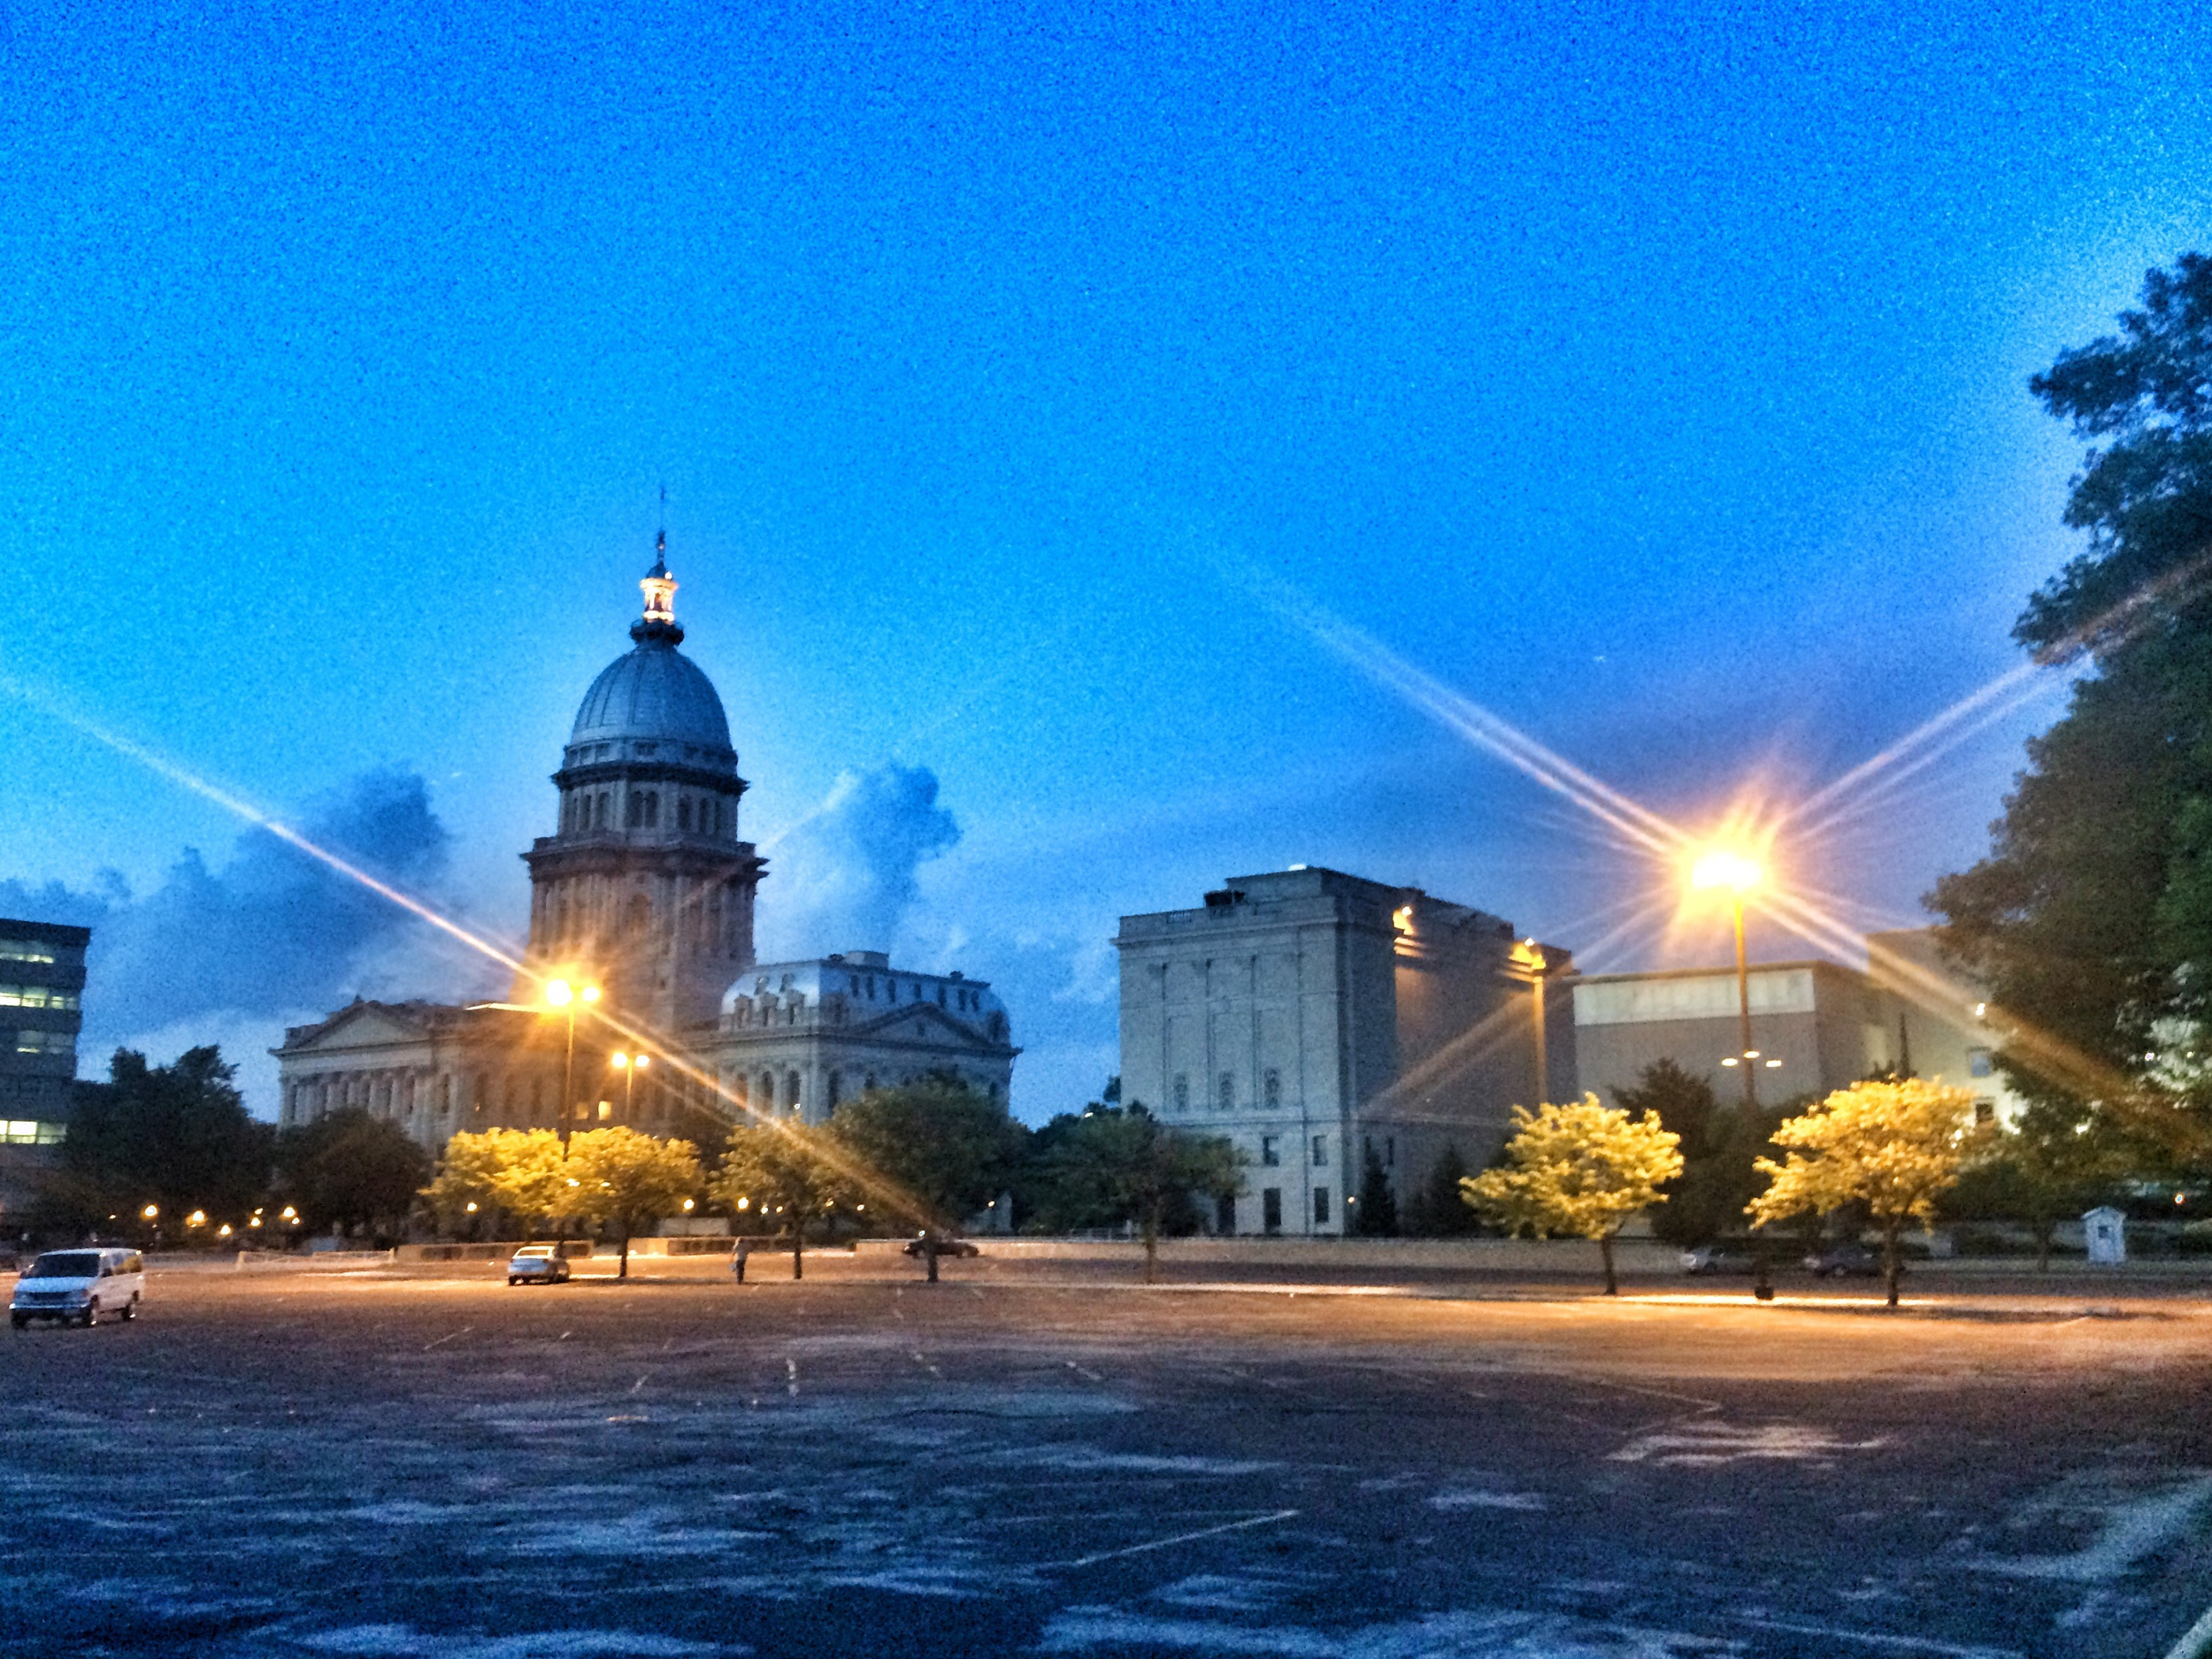 Springfield in the evening